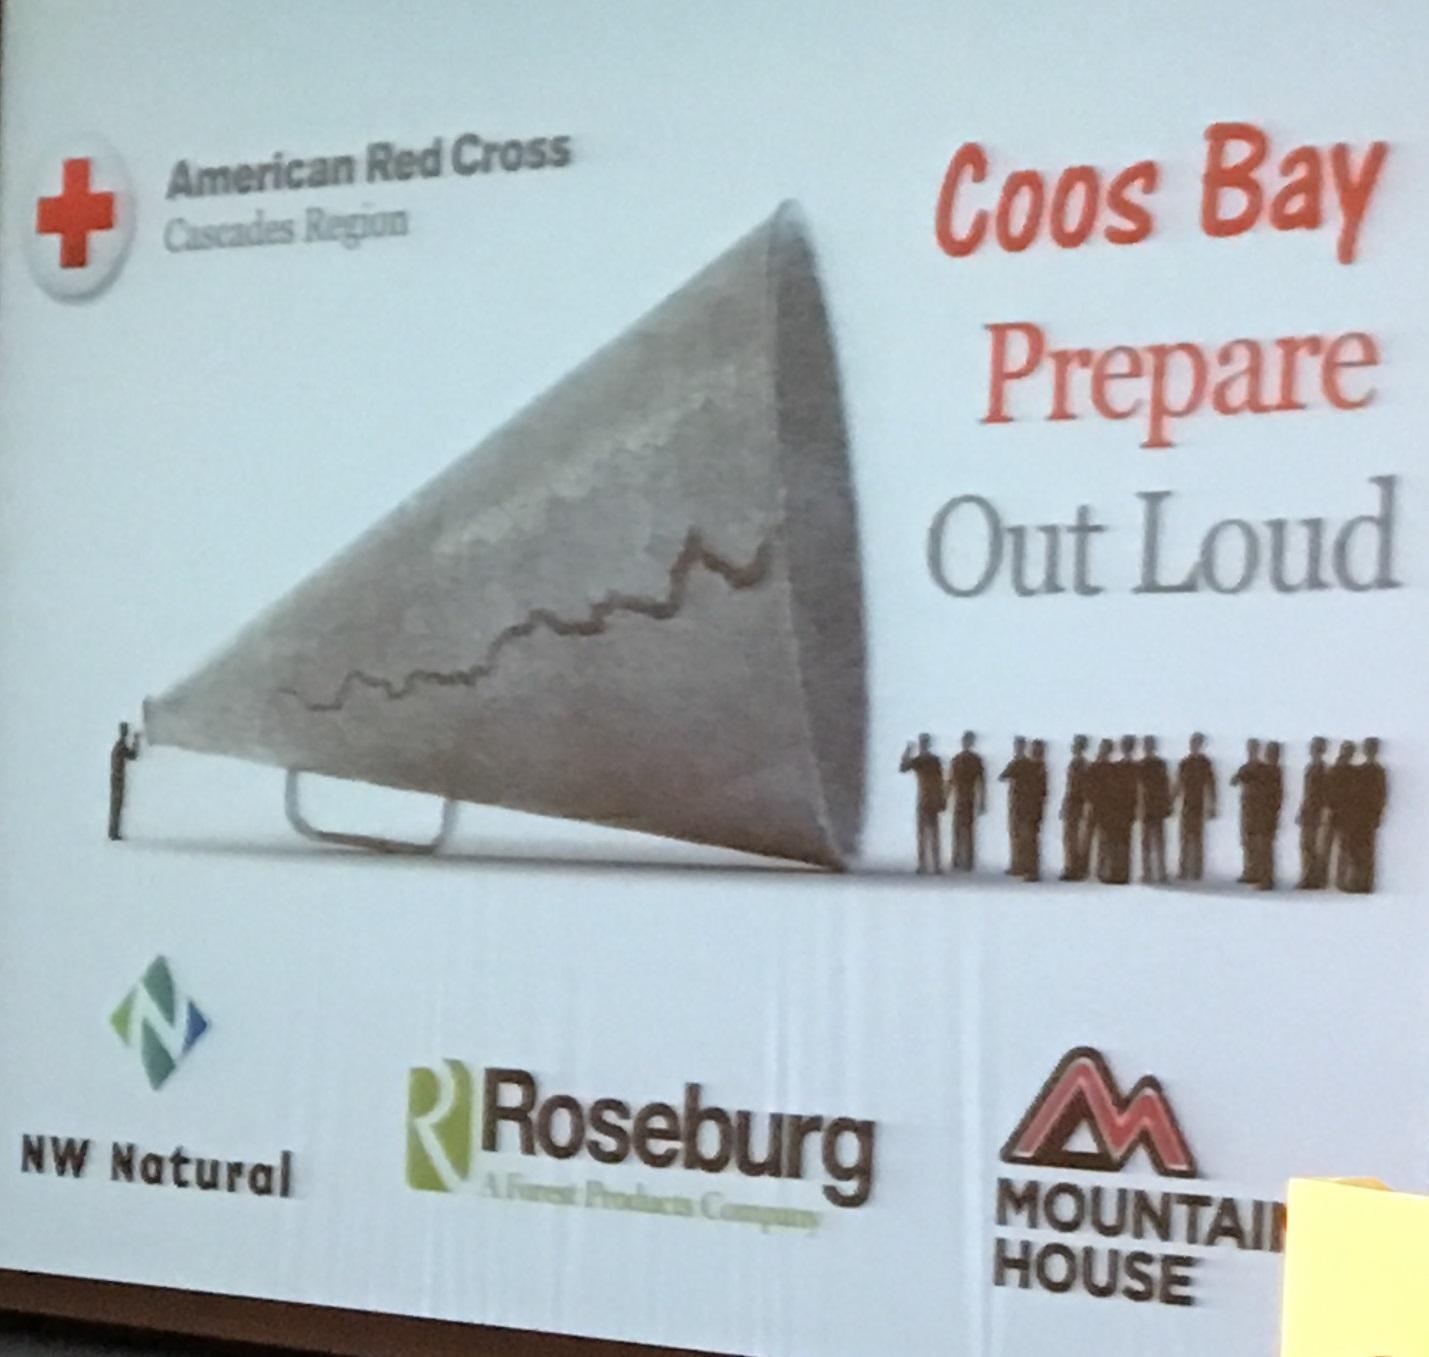 """Prepare Out Loud"" for a major earthquake was the message at a preparedness presentation in Coos Bay Monday night. (SBG photo)"